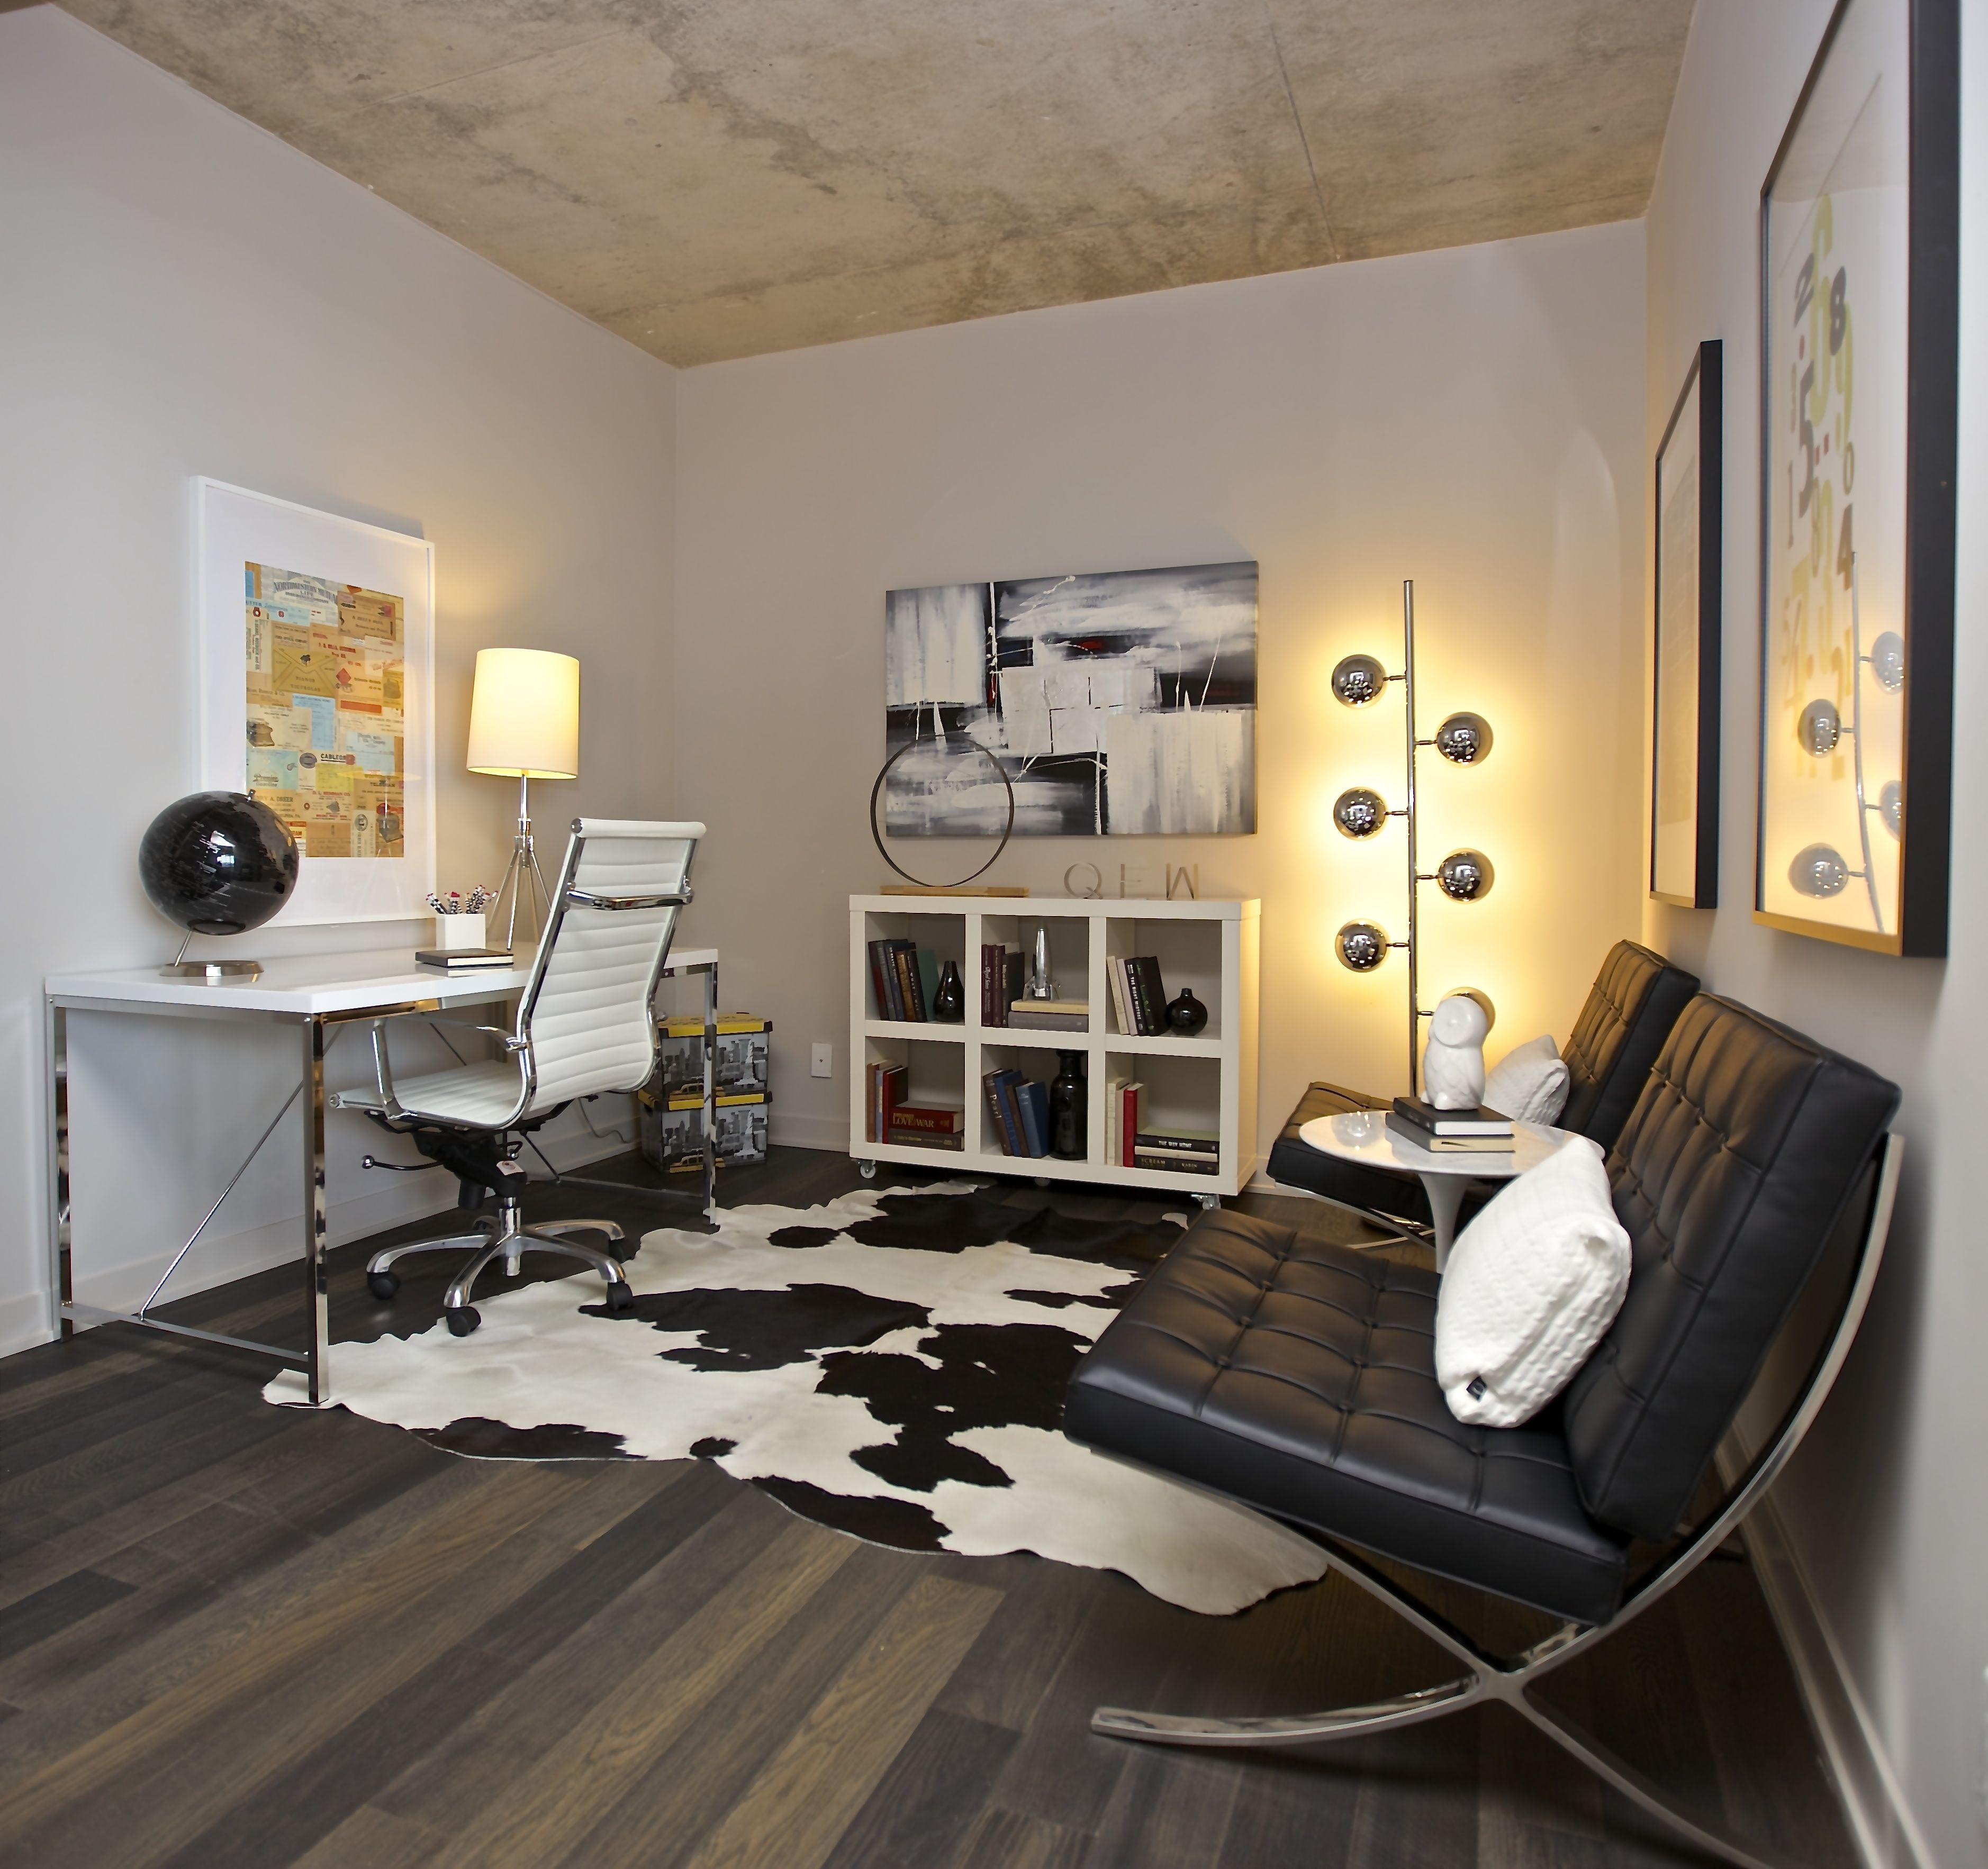 guide d co comment claicir une pi ce sombre en 7 tapes d coration pinterest deco. Black Bedroom Furniture Sets. Home Design Ideas